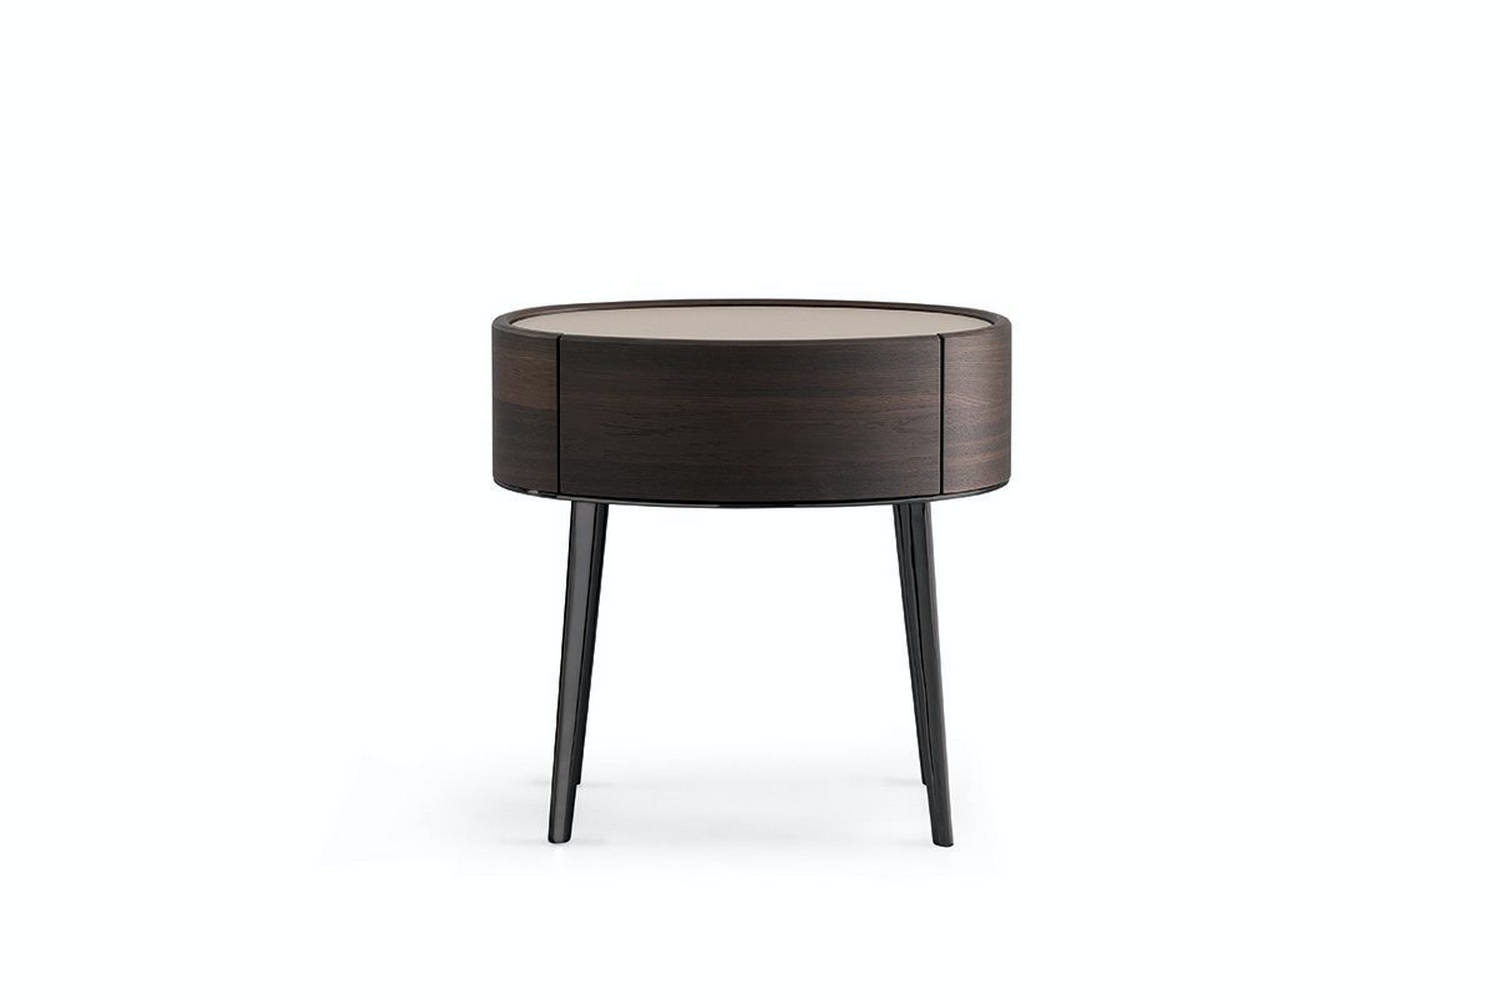 Kelly Bedside Table by Emmanuel Gallina for Poliform